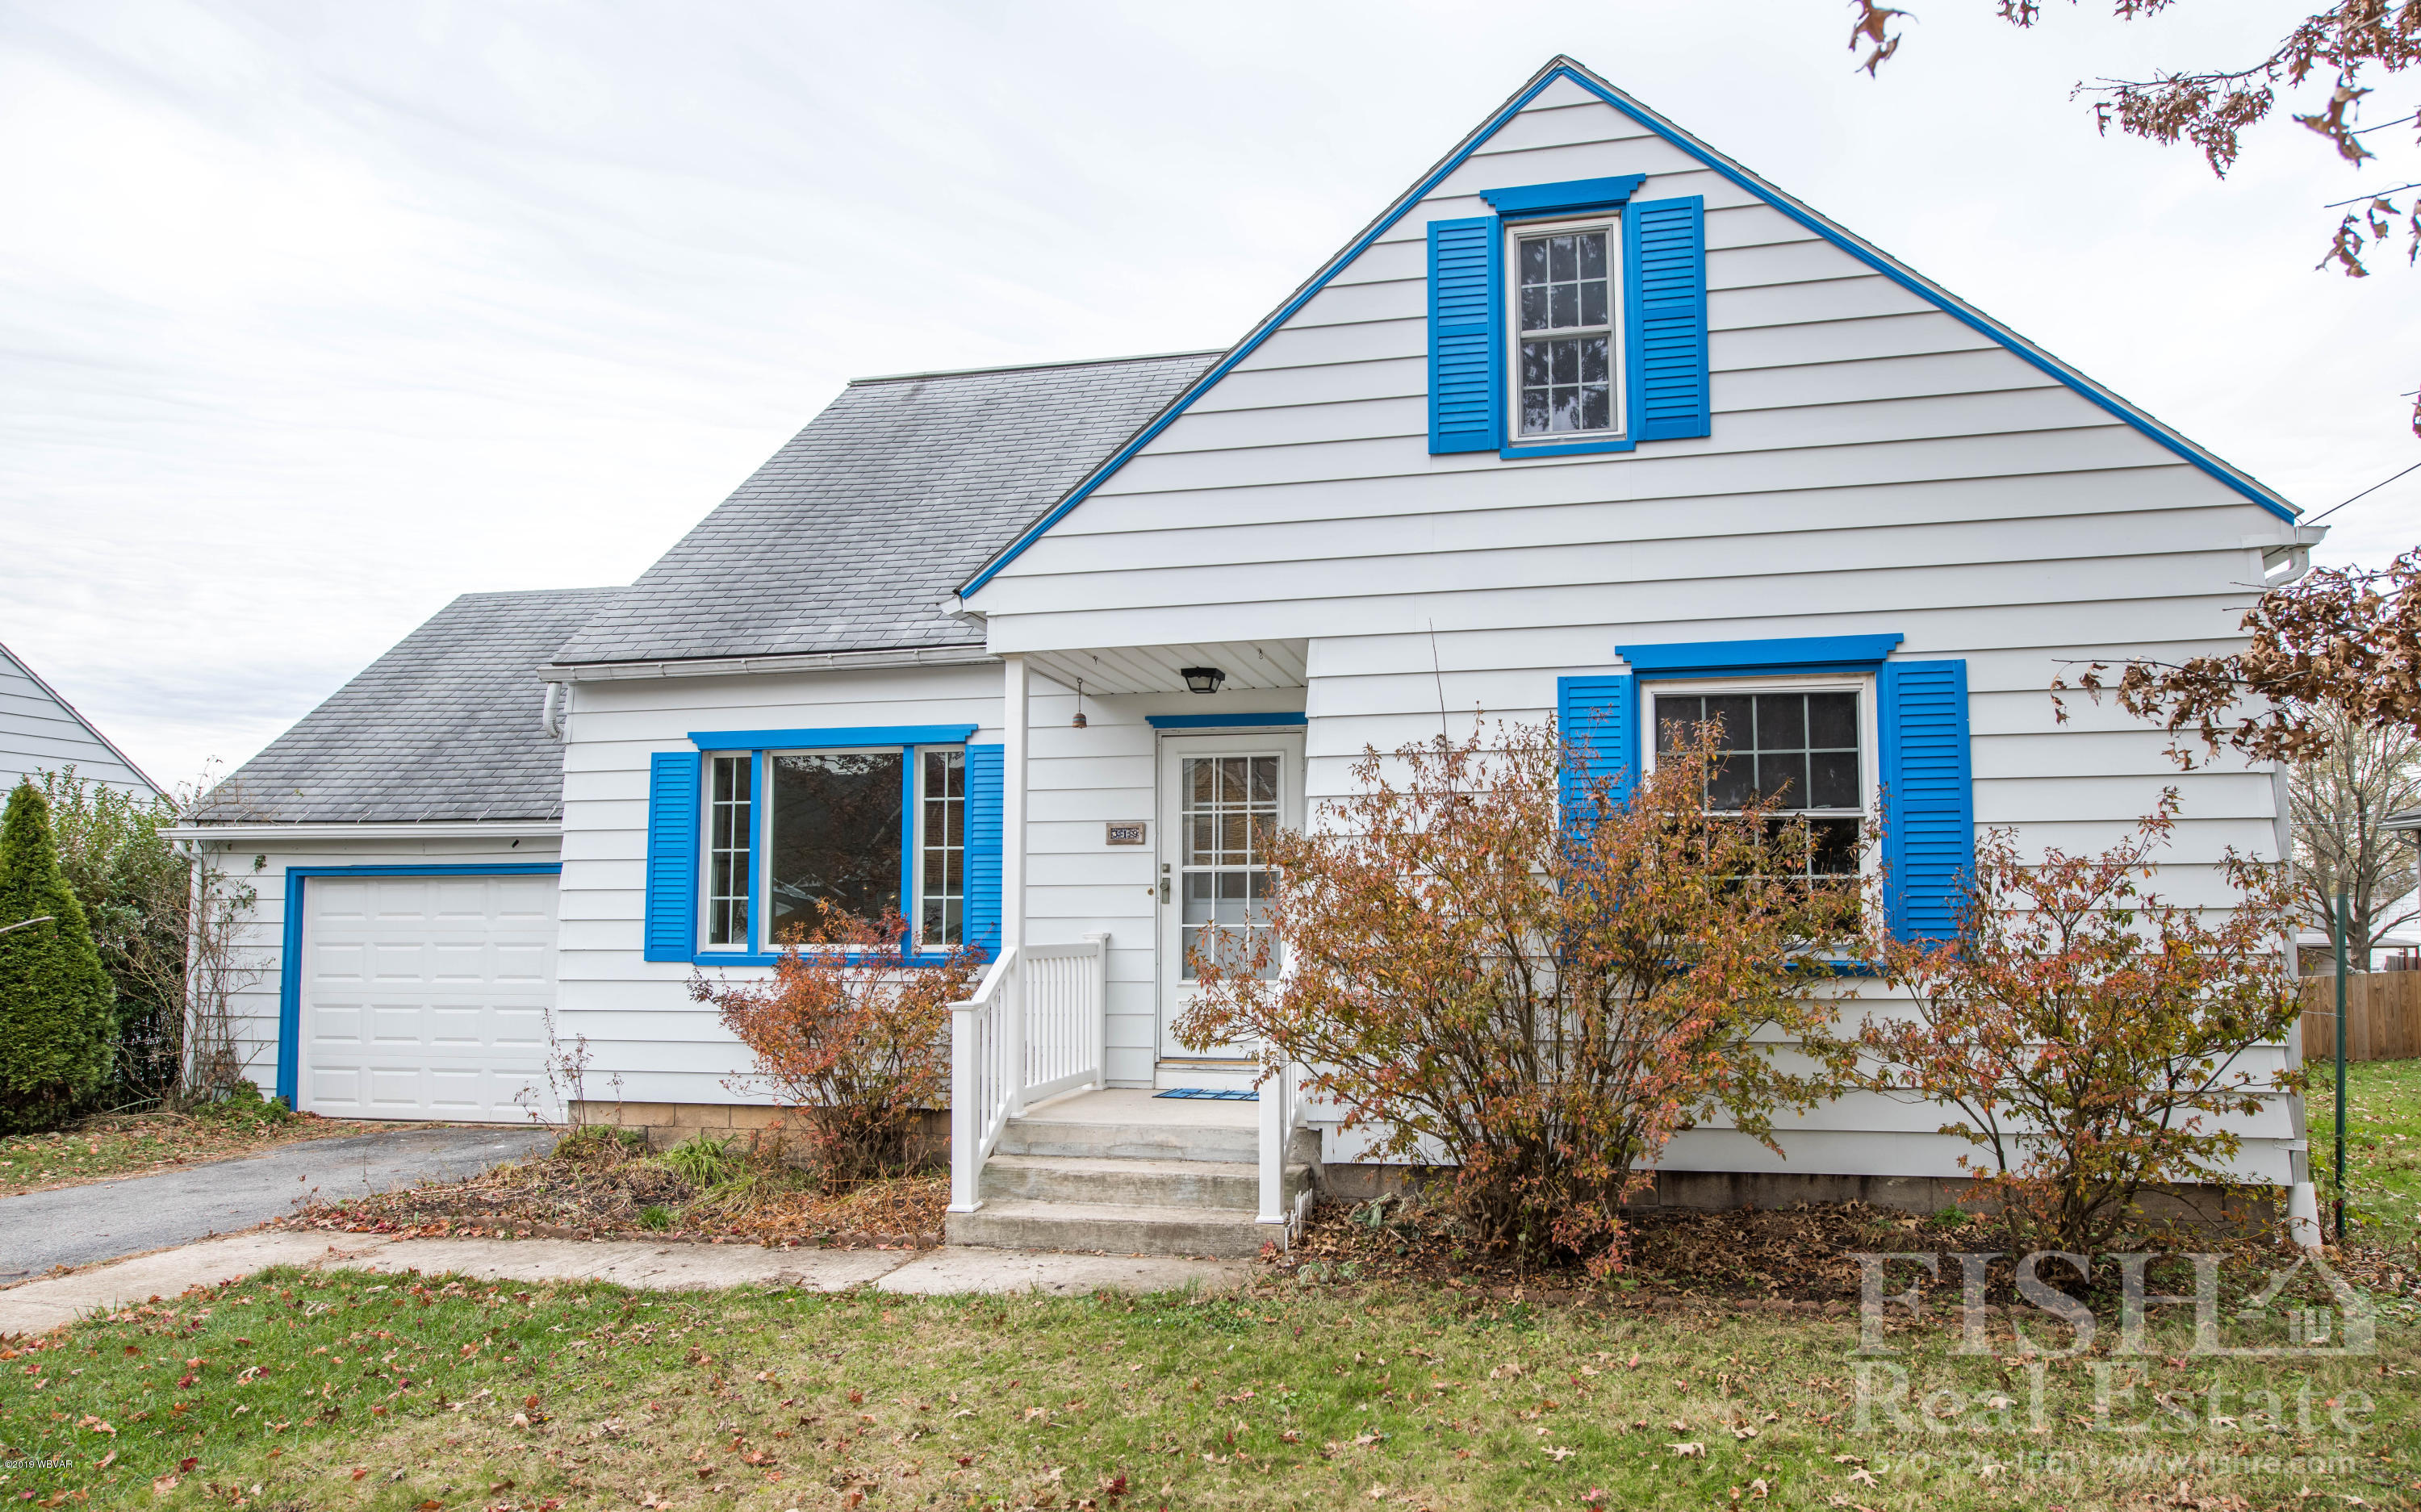 319 SEVENTH AVENUE,S. Williamsport,PA 17702,5 Bedrooms Bedrooms,2 BathroomsBathrooms,Residential,SEVENTH,WB-89092